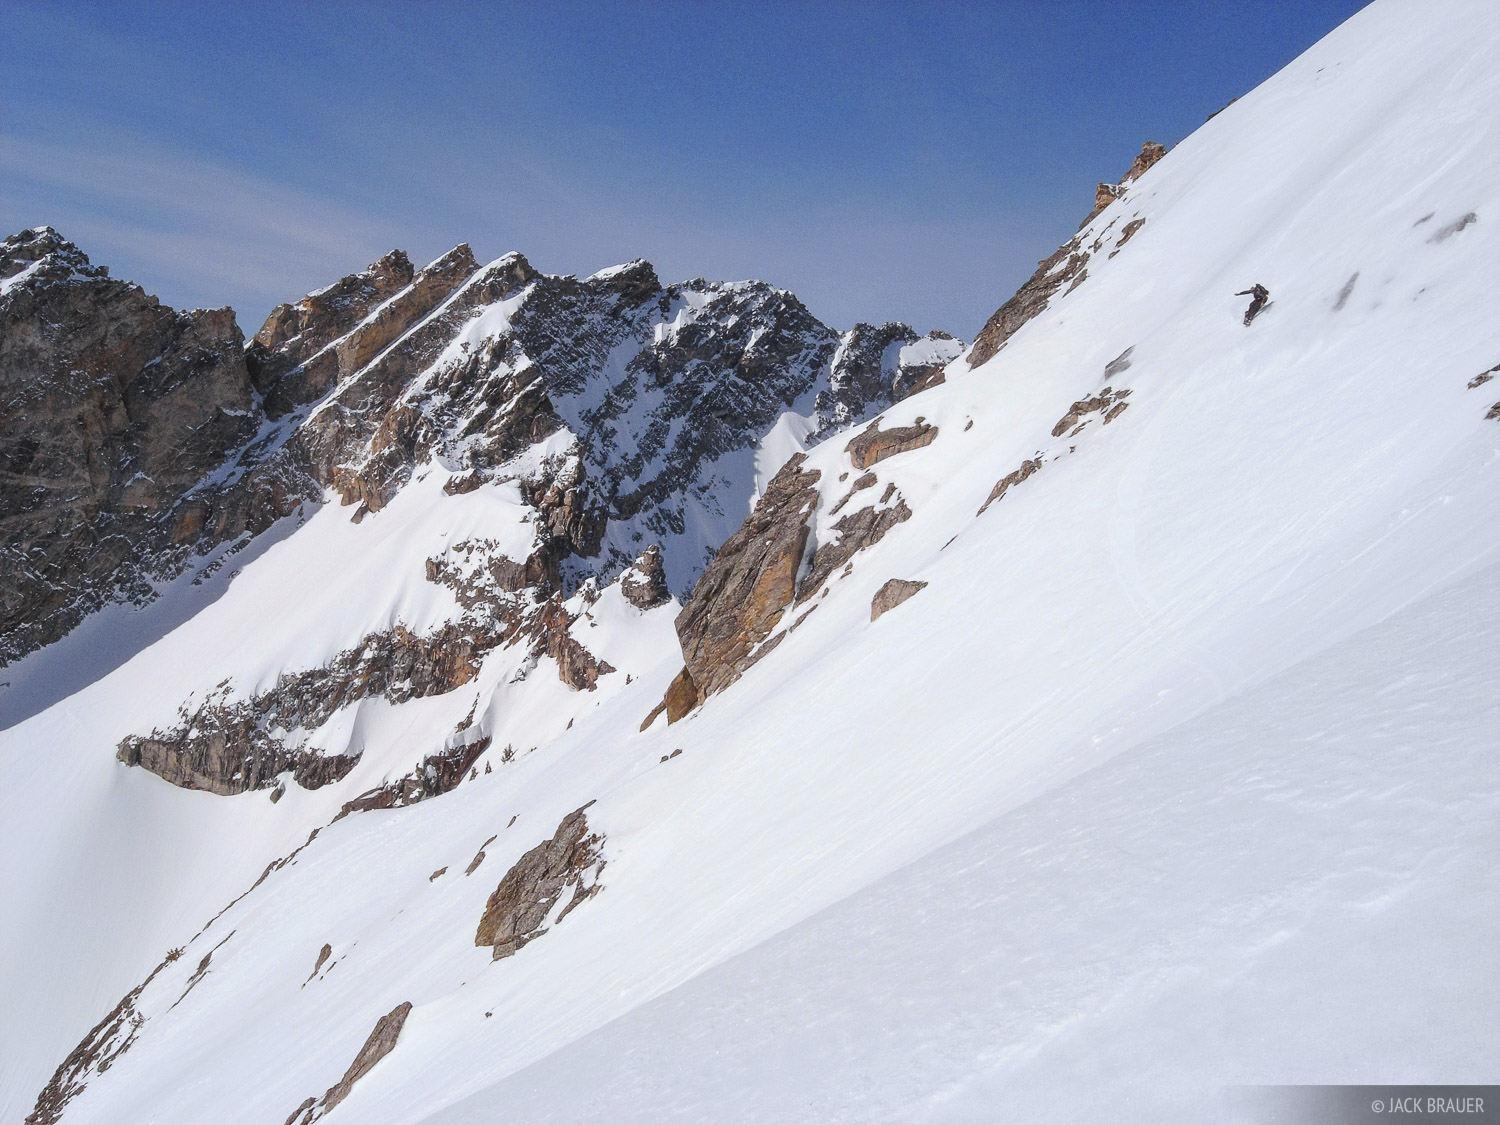 Jason King drops in to the steep east face of Rockchuck Peak.